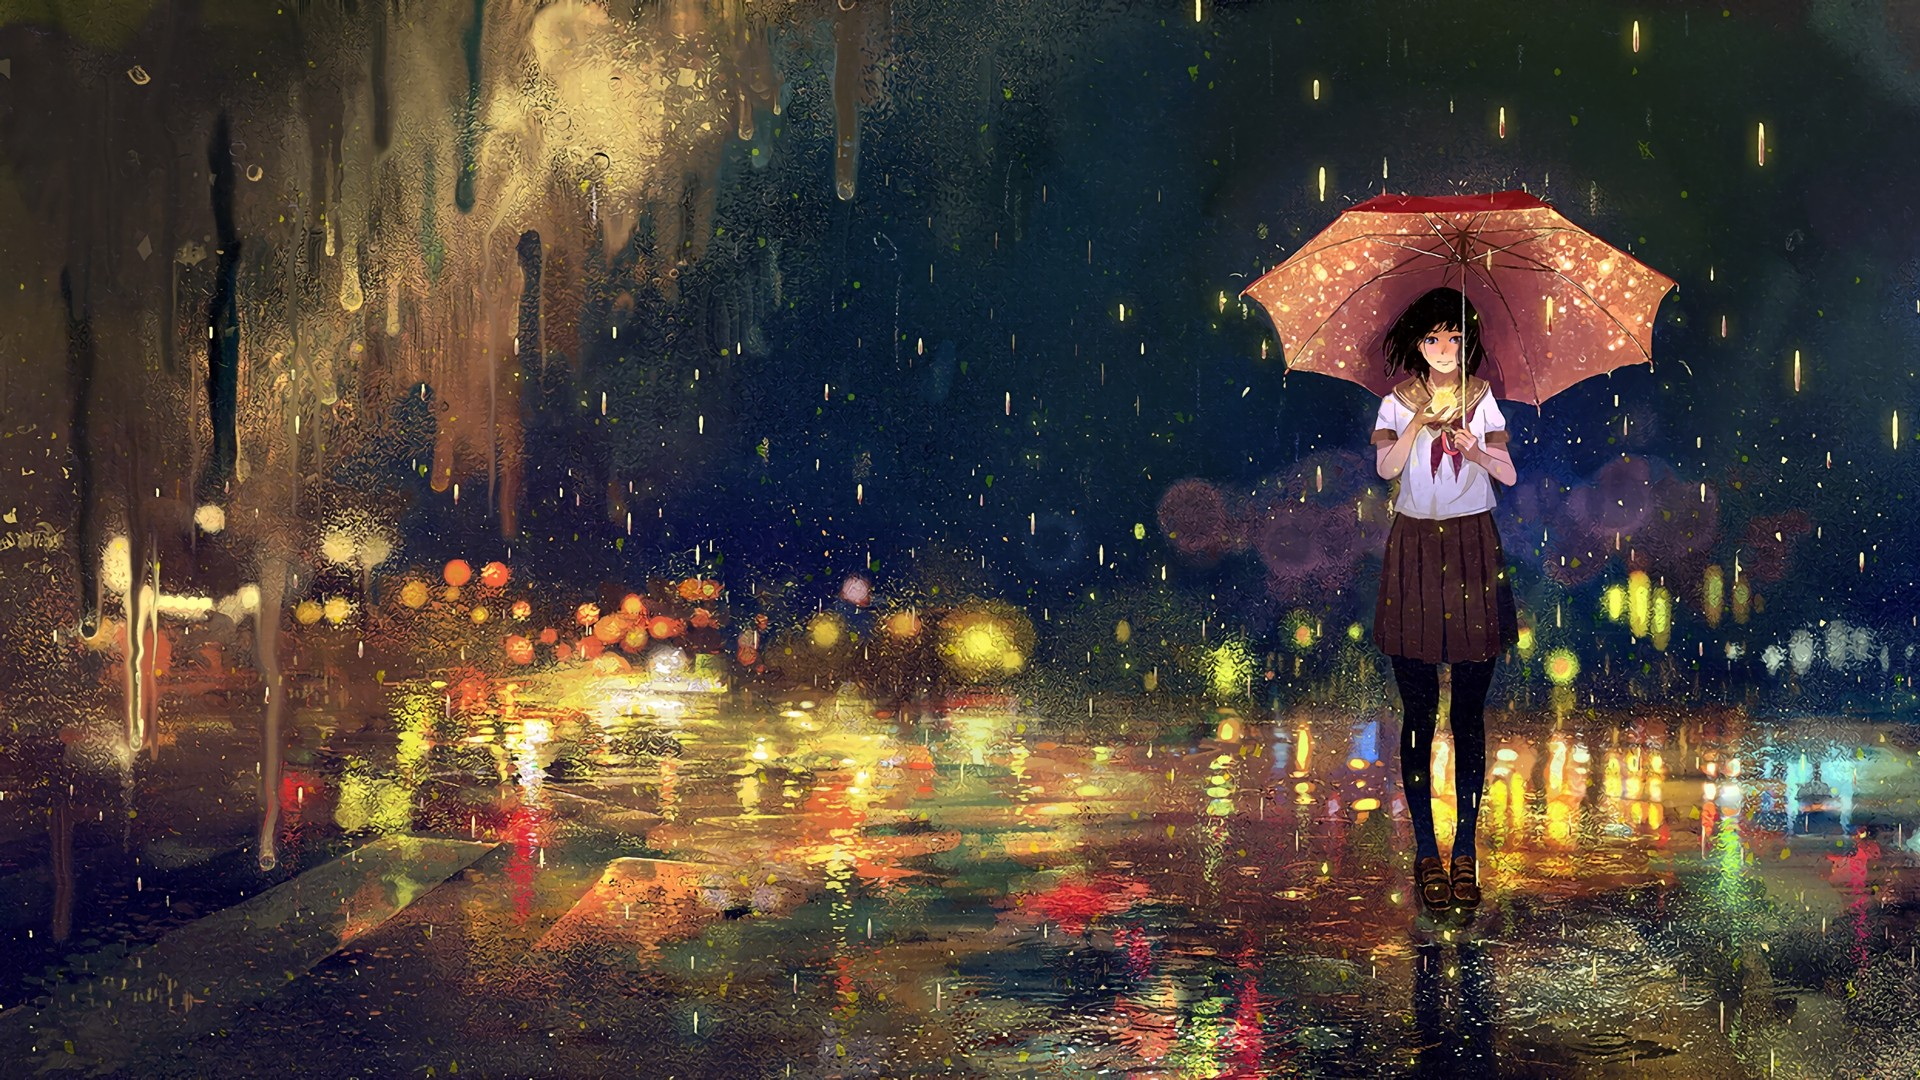 Rain Art Wallpaper